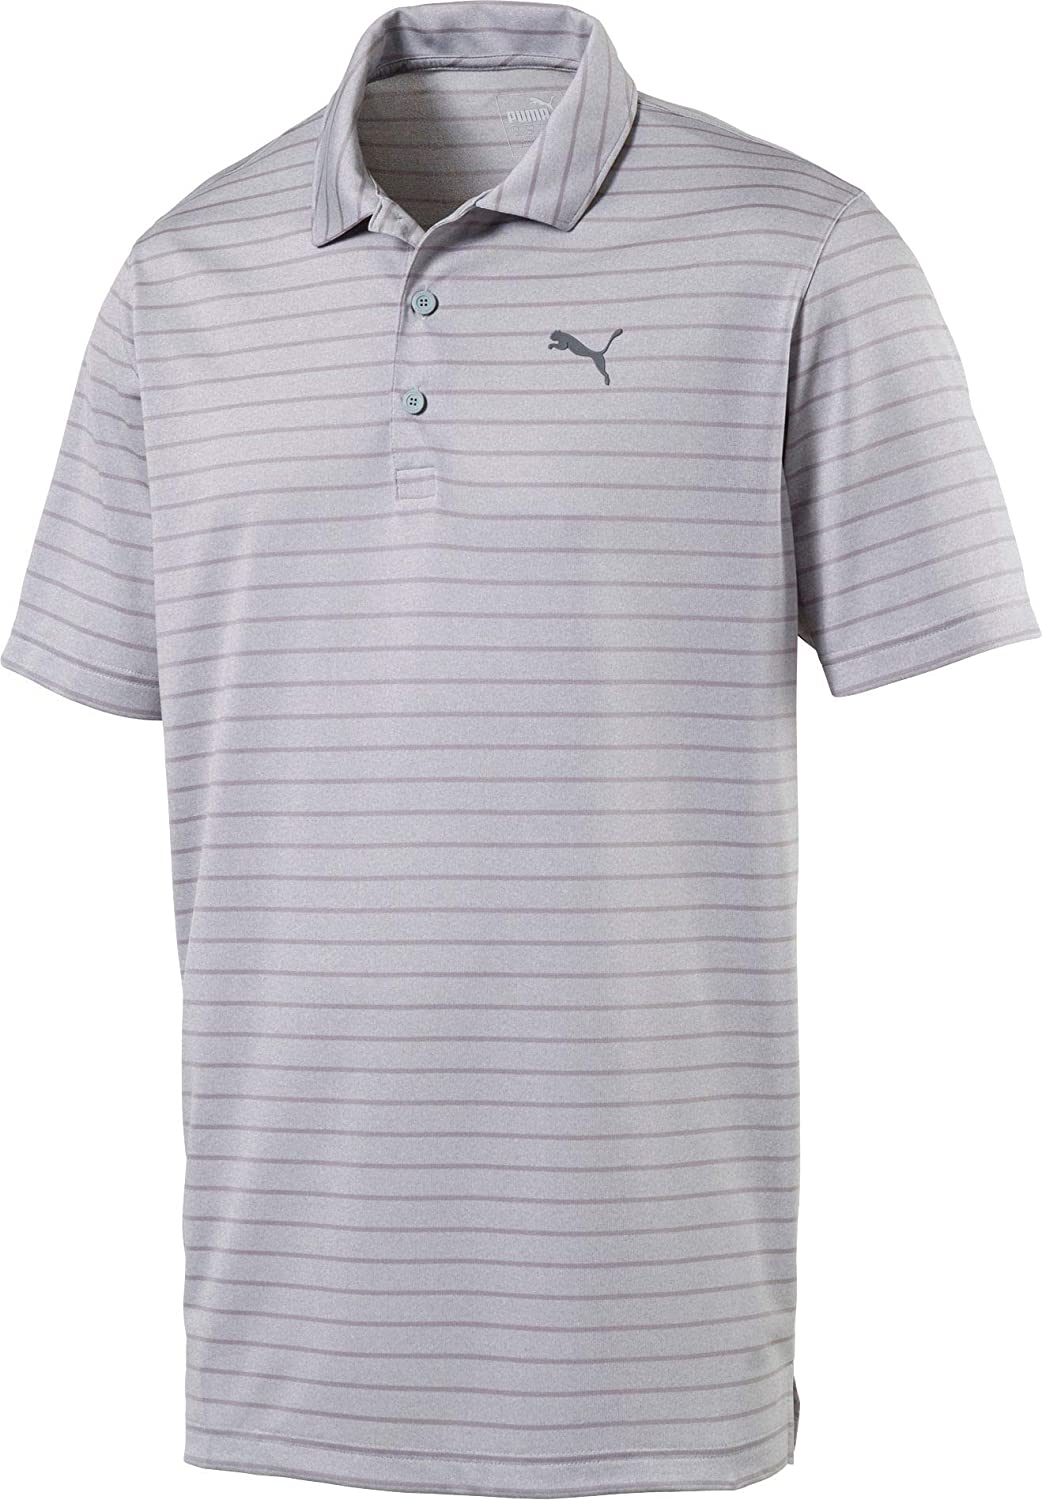 [プーマ] メンズ シャツ PUMA Men's Rotation Stripe Golf Polo [並行輸入品] L  B07TF6L8MS